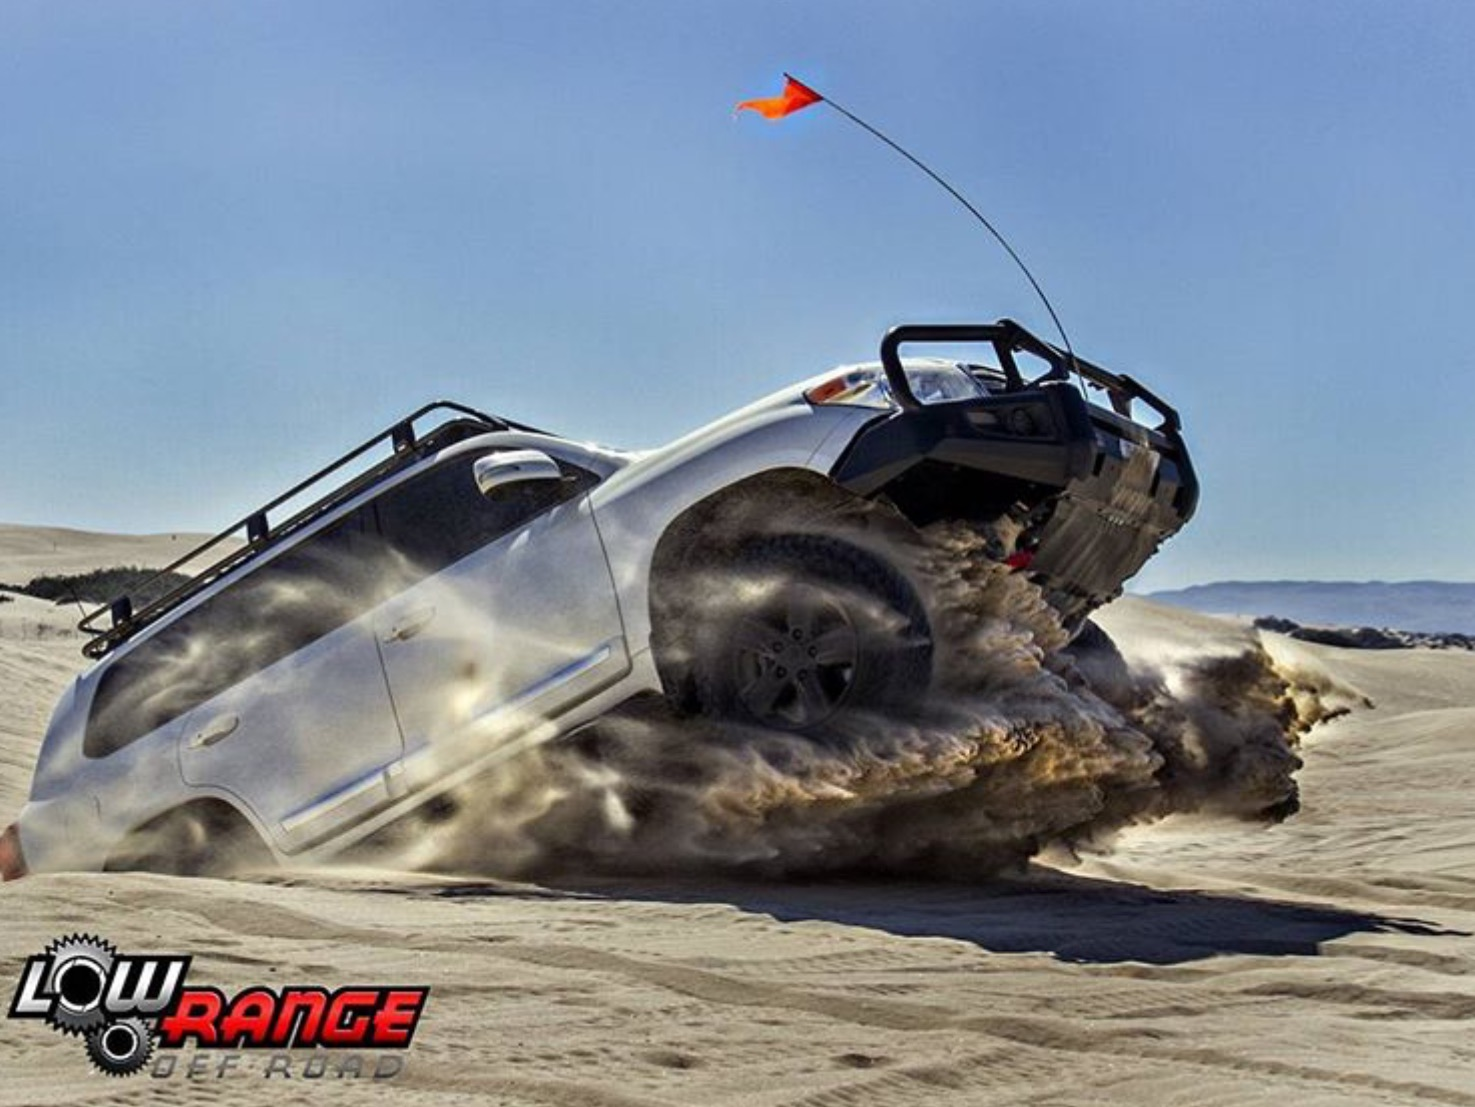 XPLOR R airing it out at Pismo Jamboree 2016